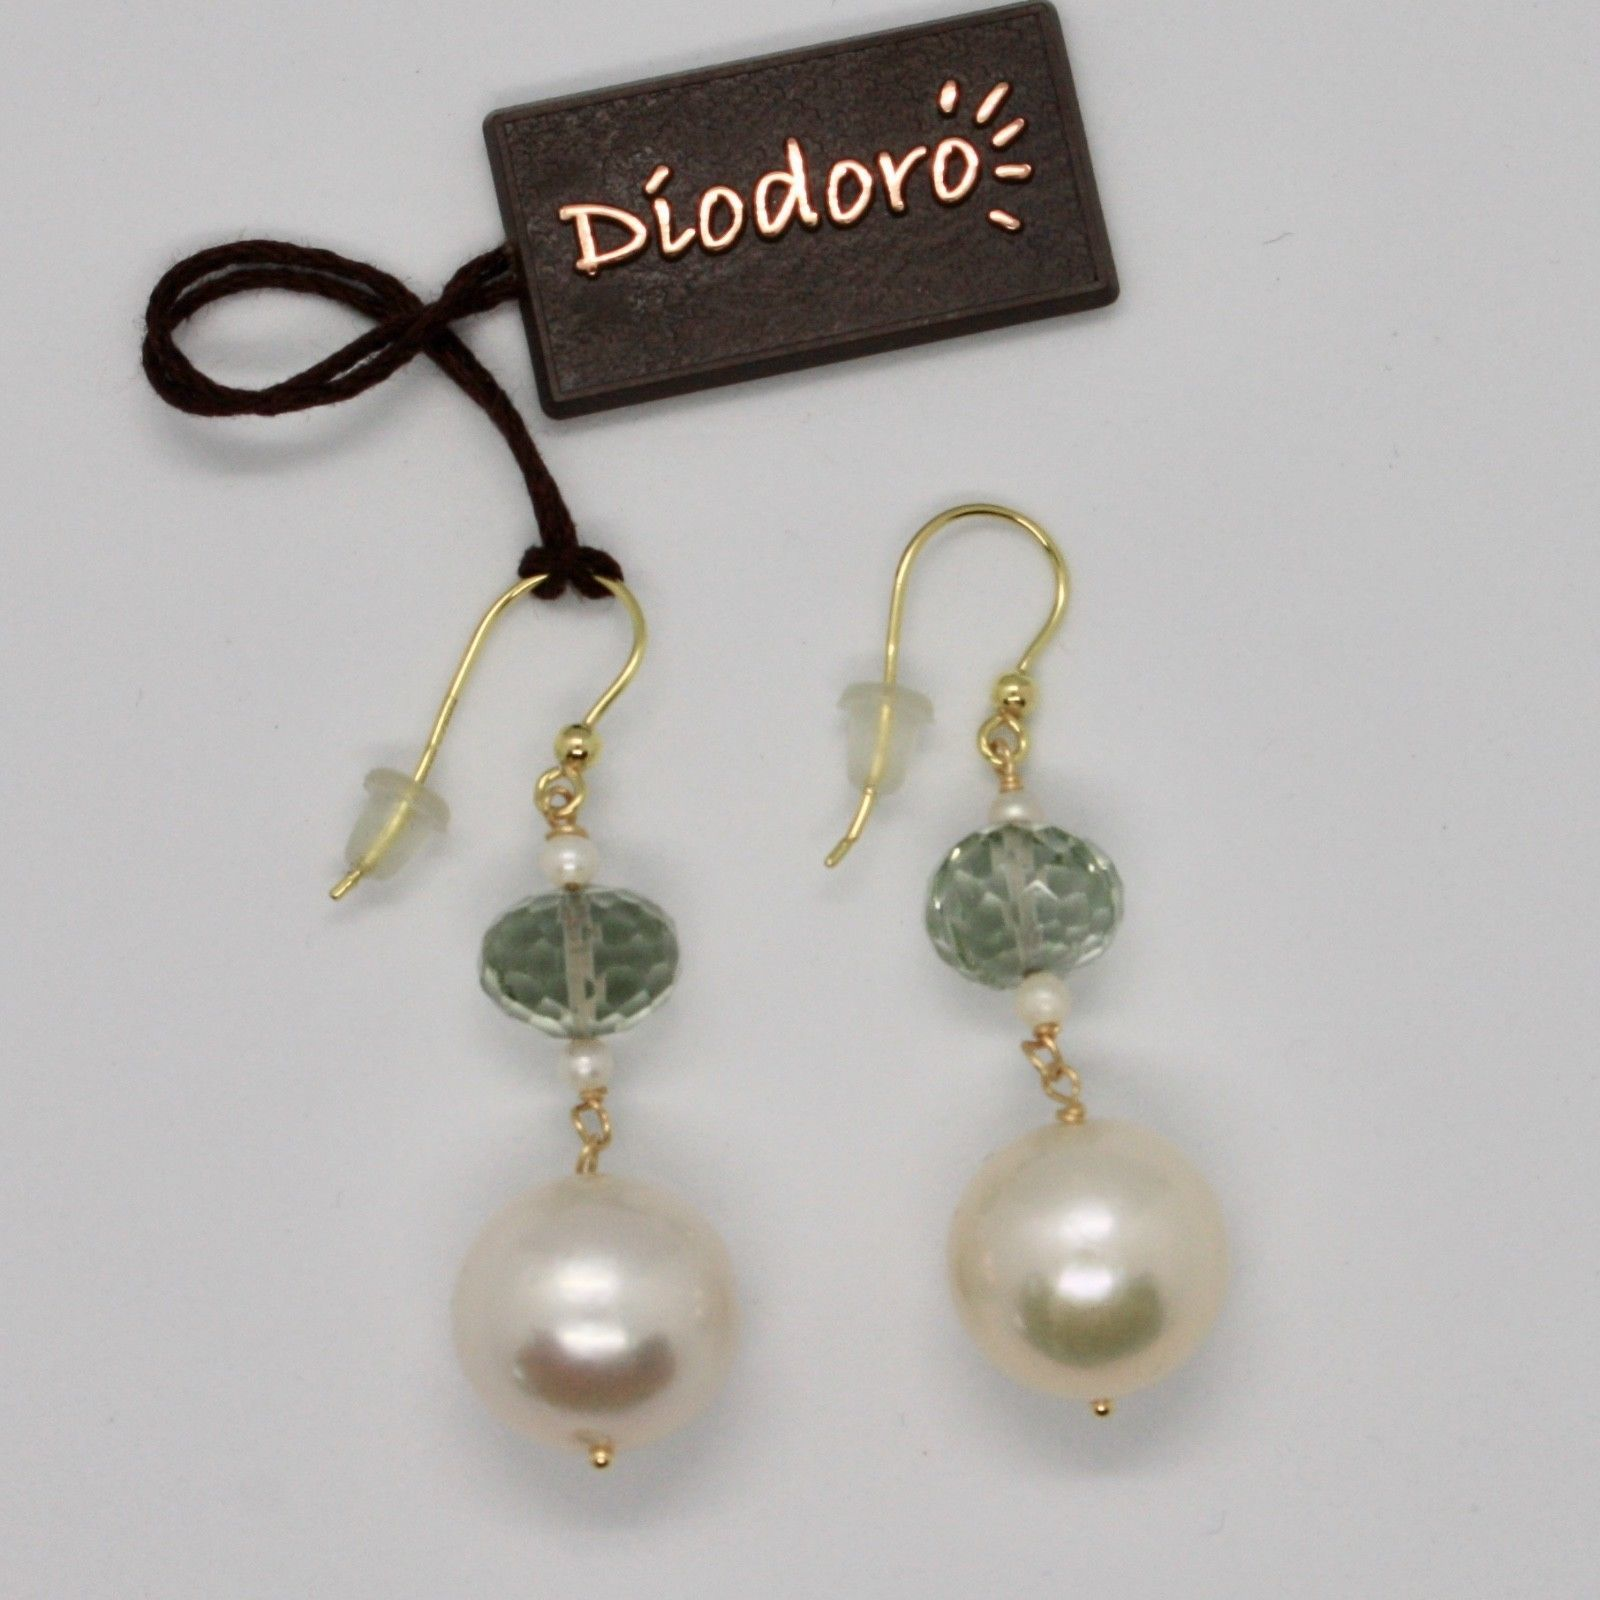 YELLOW GOLD EARRINGS 18KT 750 PEARLS OF WATER DOLCE AND PRASIOLITE MADE IN ITALY